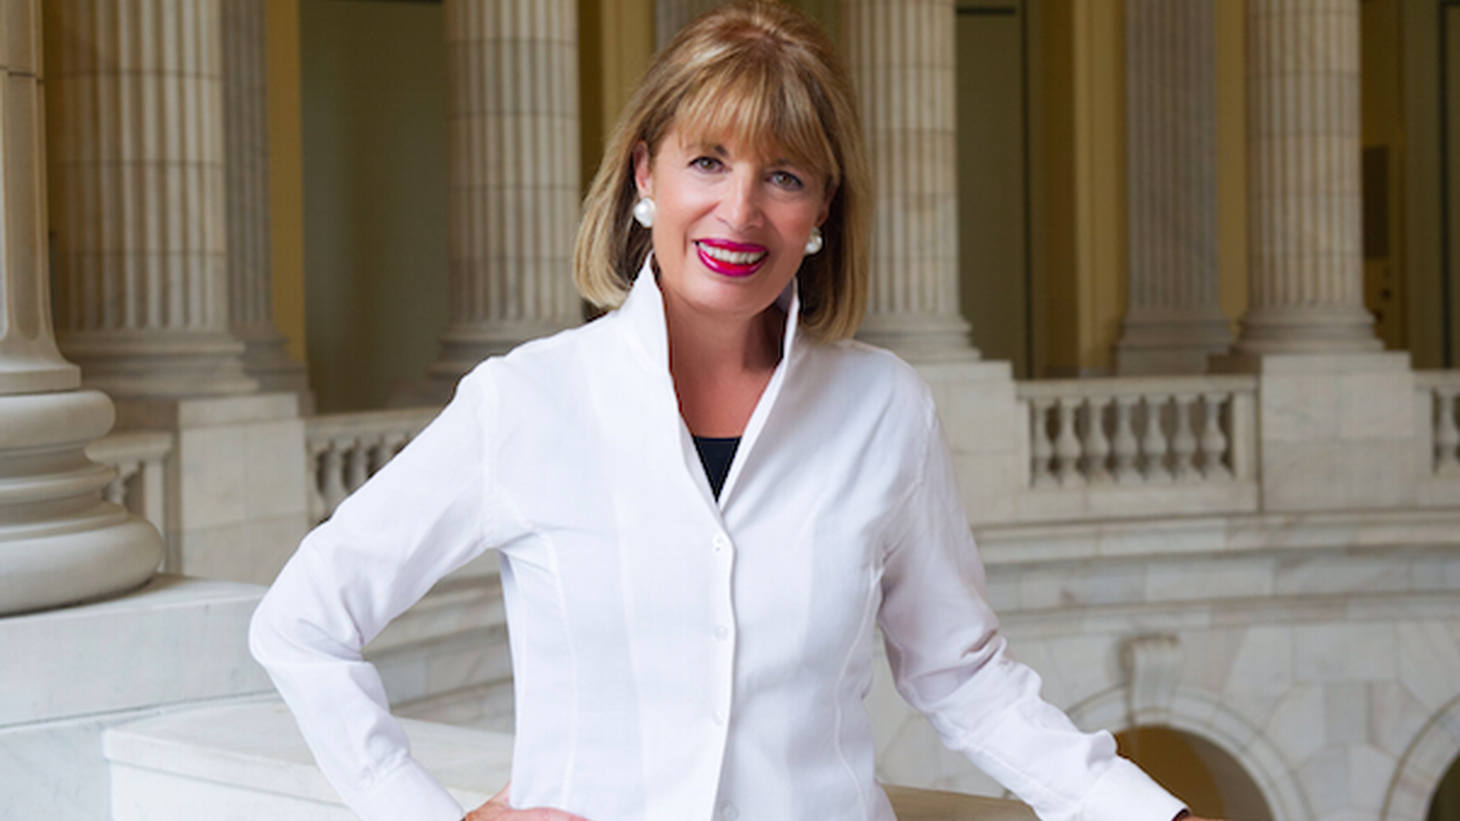 California Congresswoman Jackie Speier shared her personal story of sexual assault in a video posted last month.